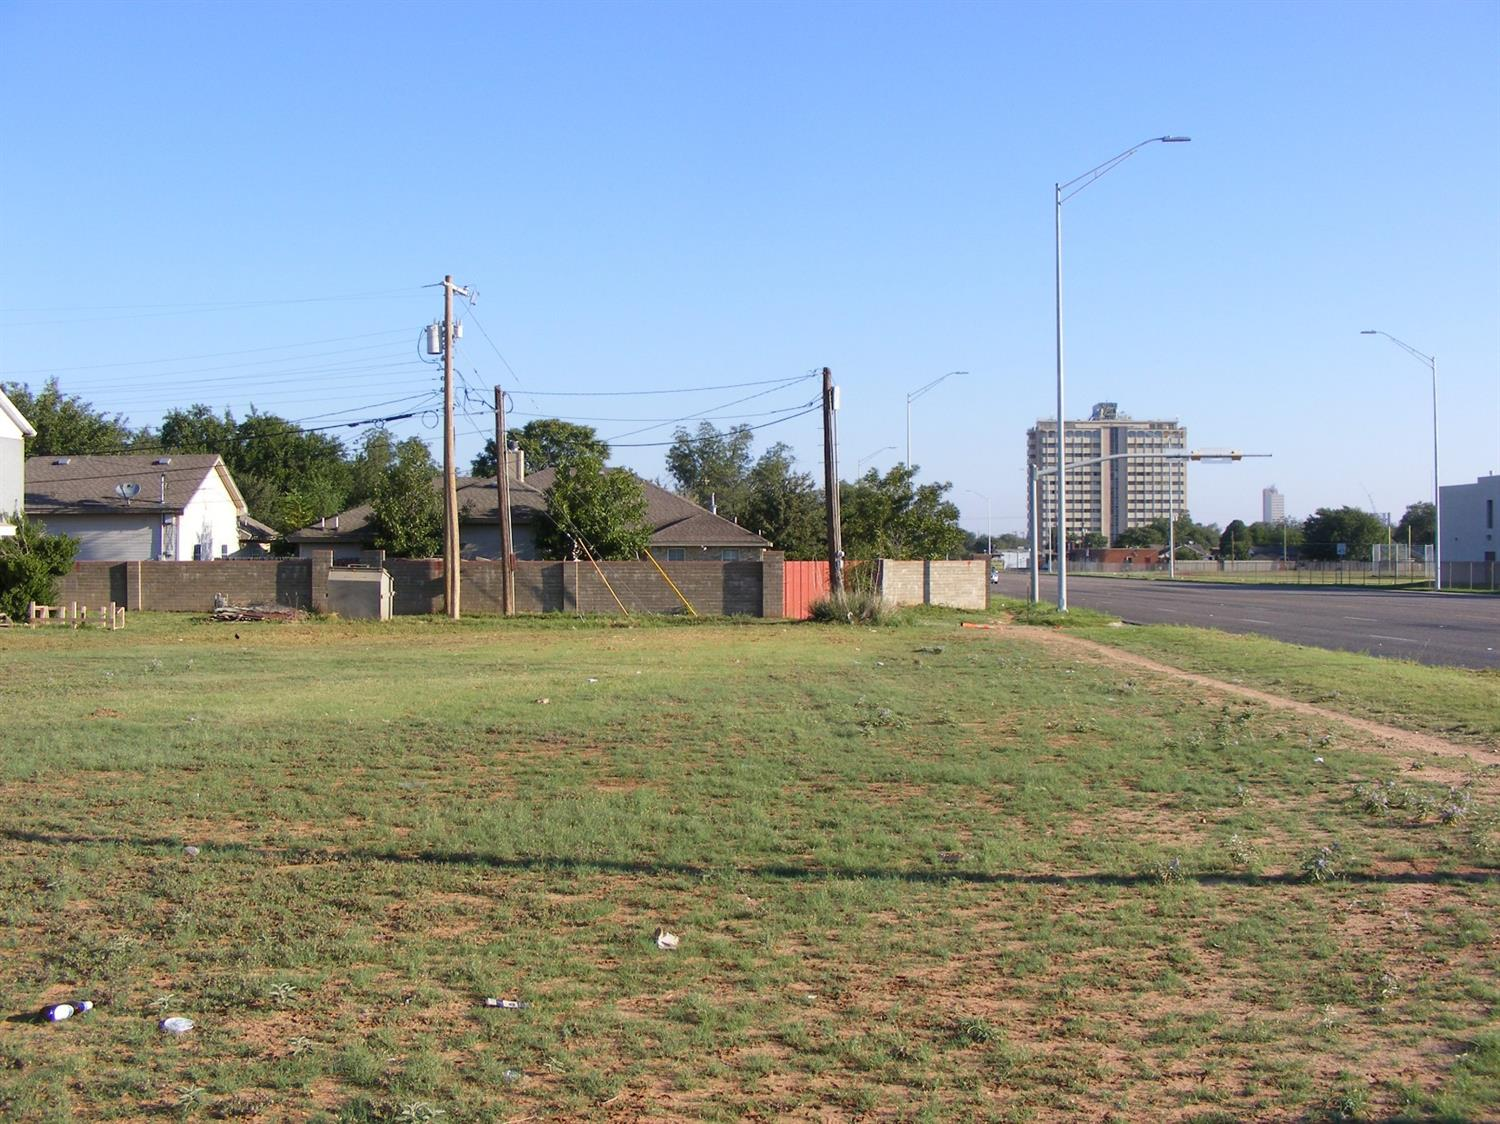 Three prime commercial lots with Avenue Q frontage and two residential lots, one with a house, are available for sale. All lots are contiguous and possibly rezoned commercial/residential.